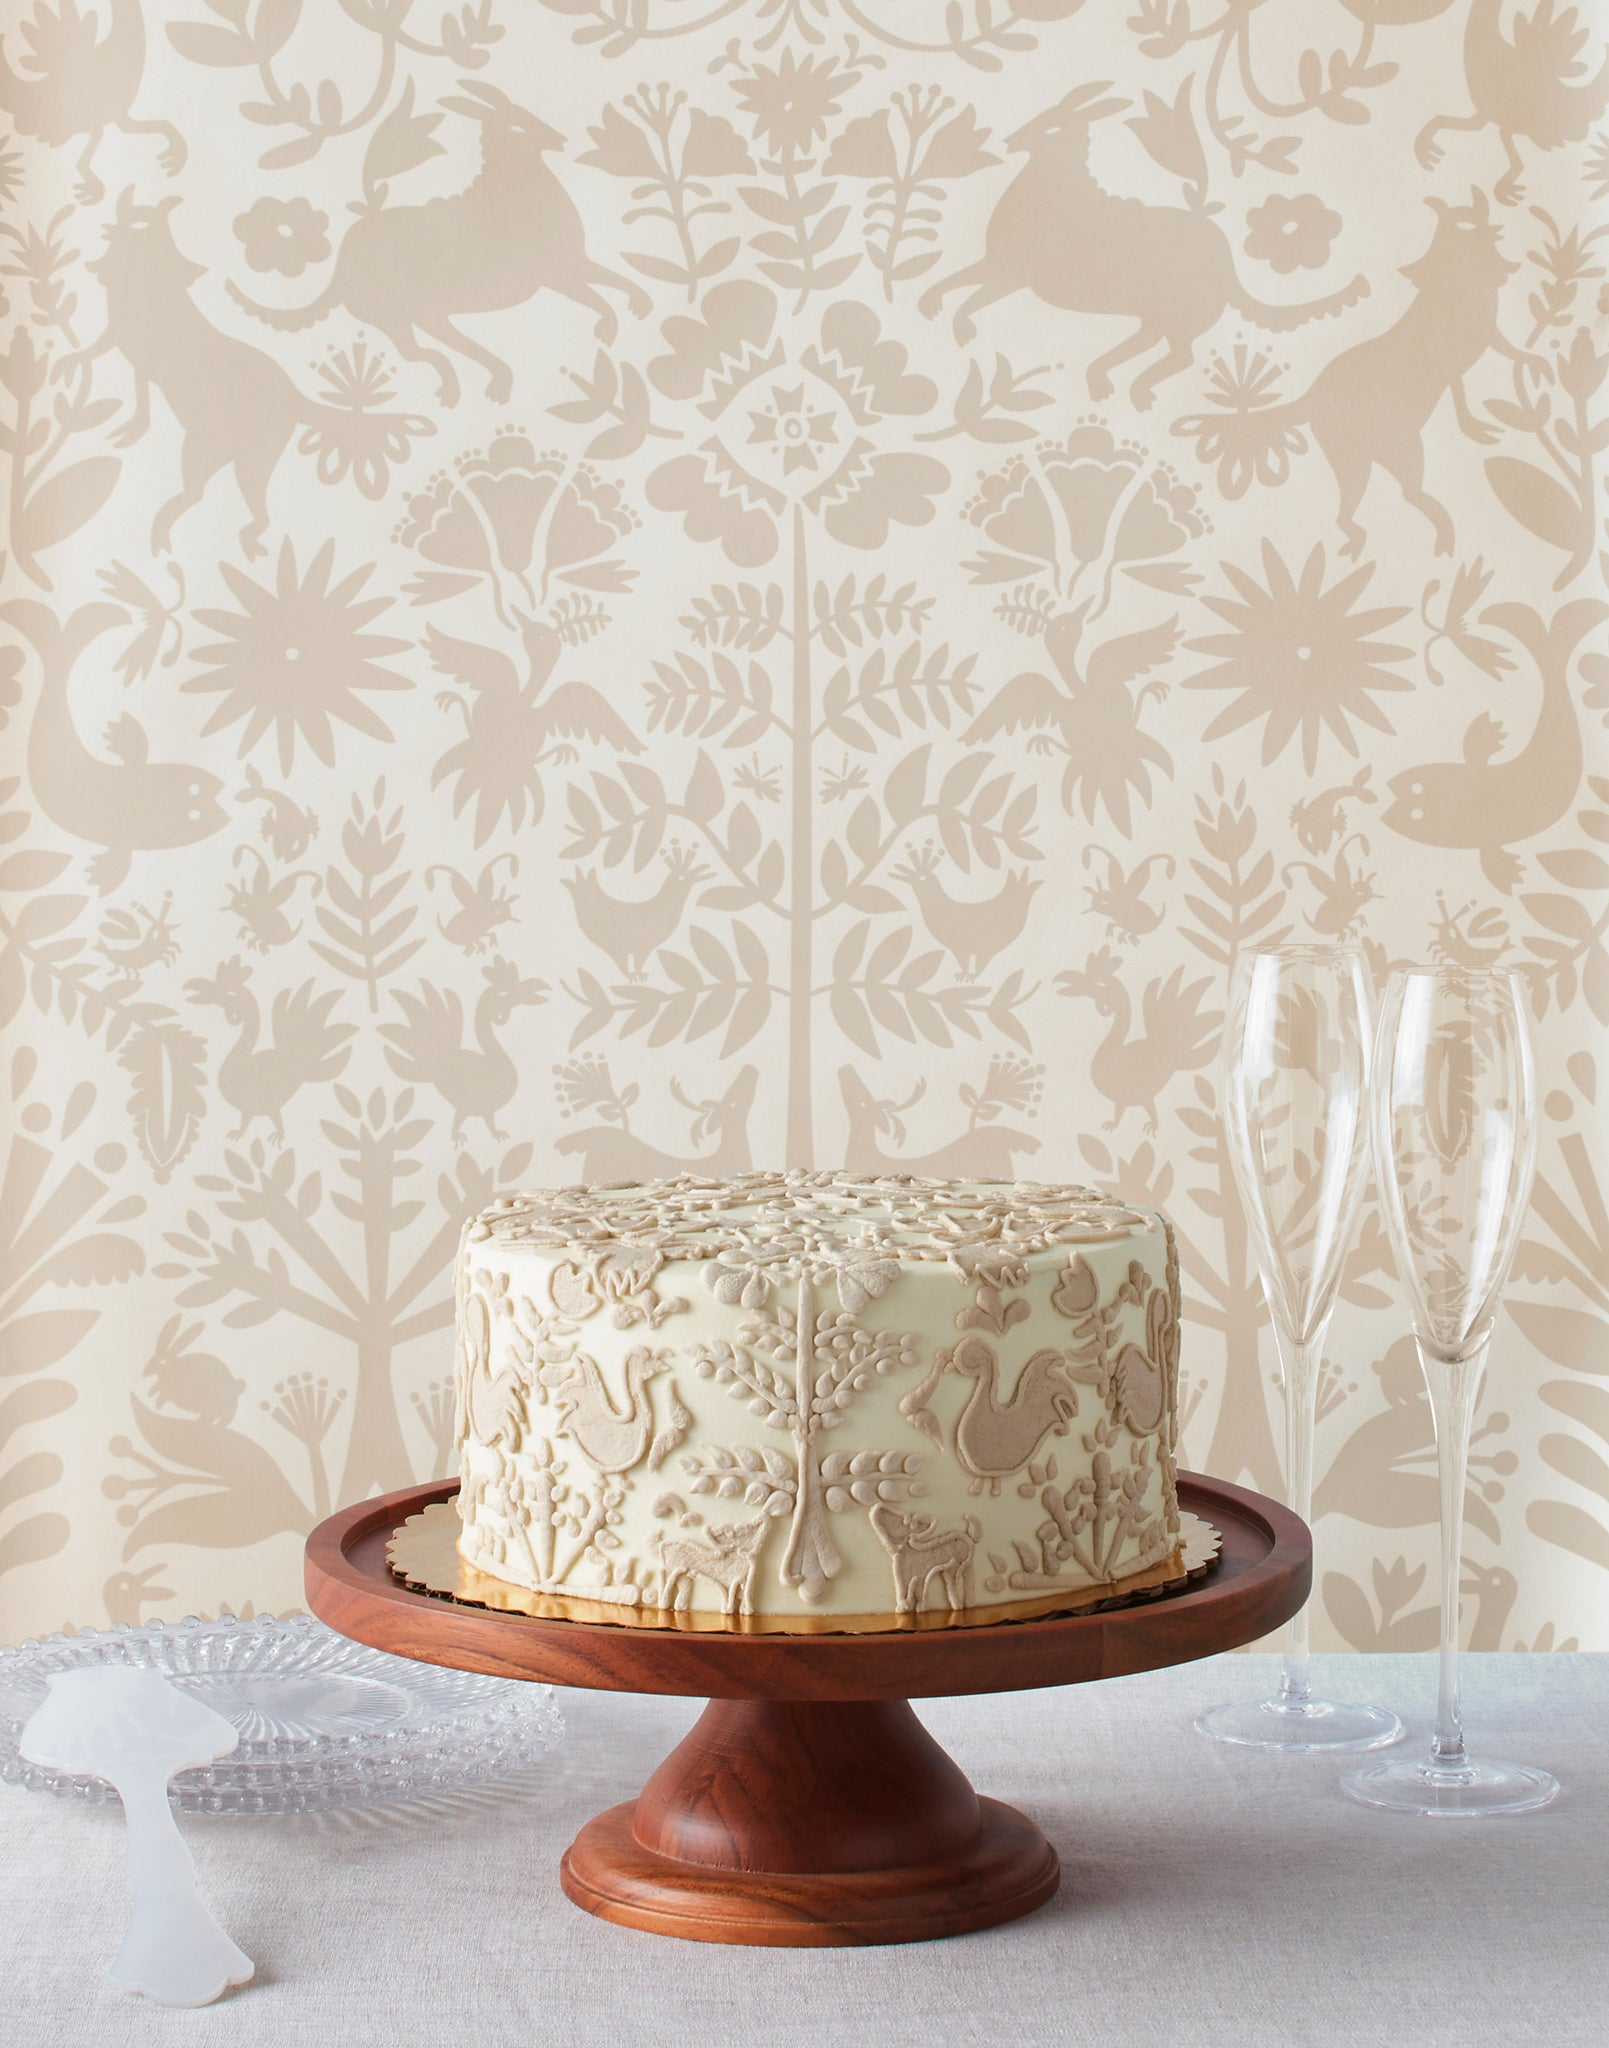 Otomi (Taupe) wallpaper + Otomi cake | Hygge & West